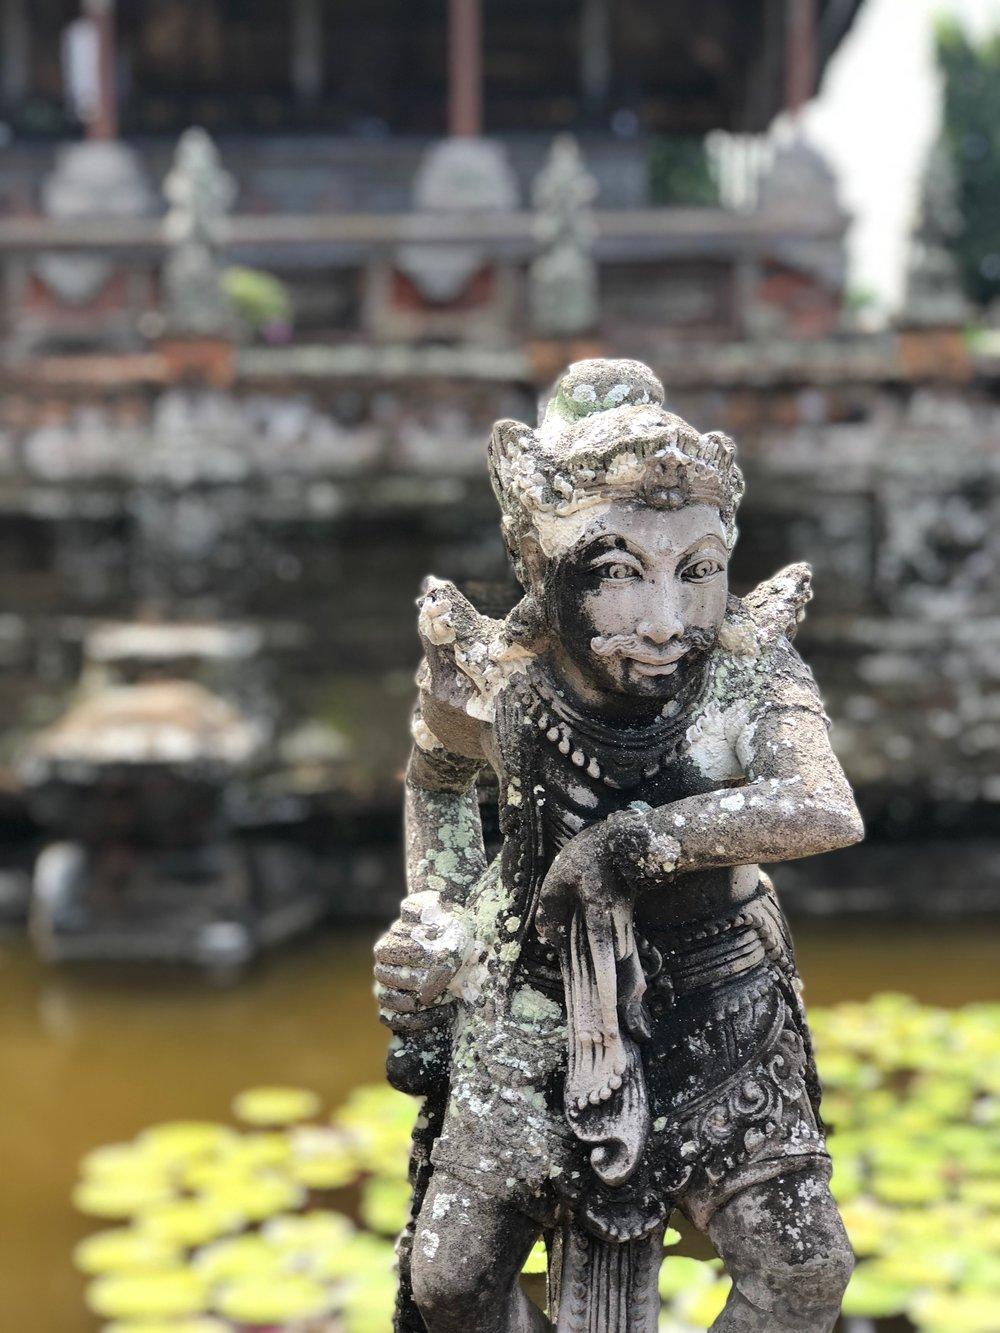 Lichen covers many of the statues on Bali, lending an ancient otherworldly air to them